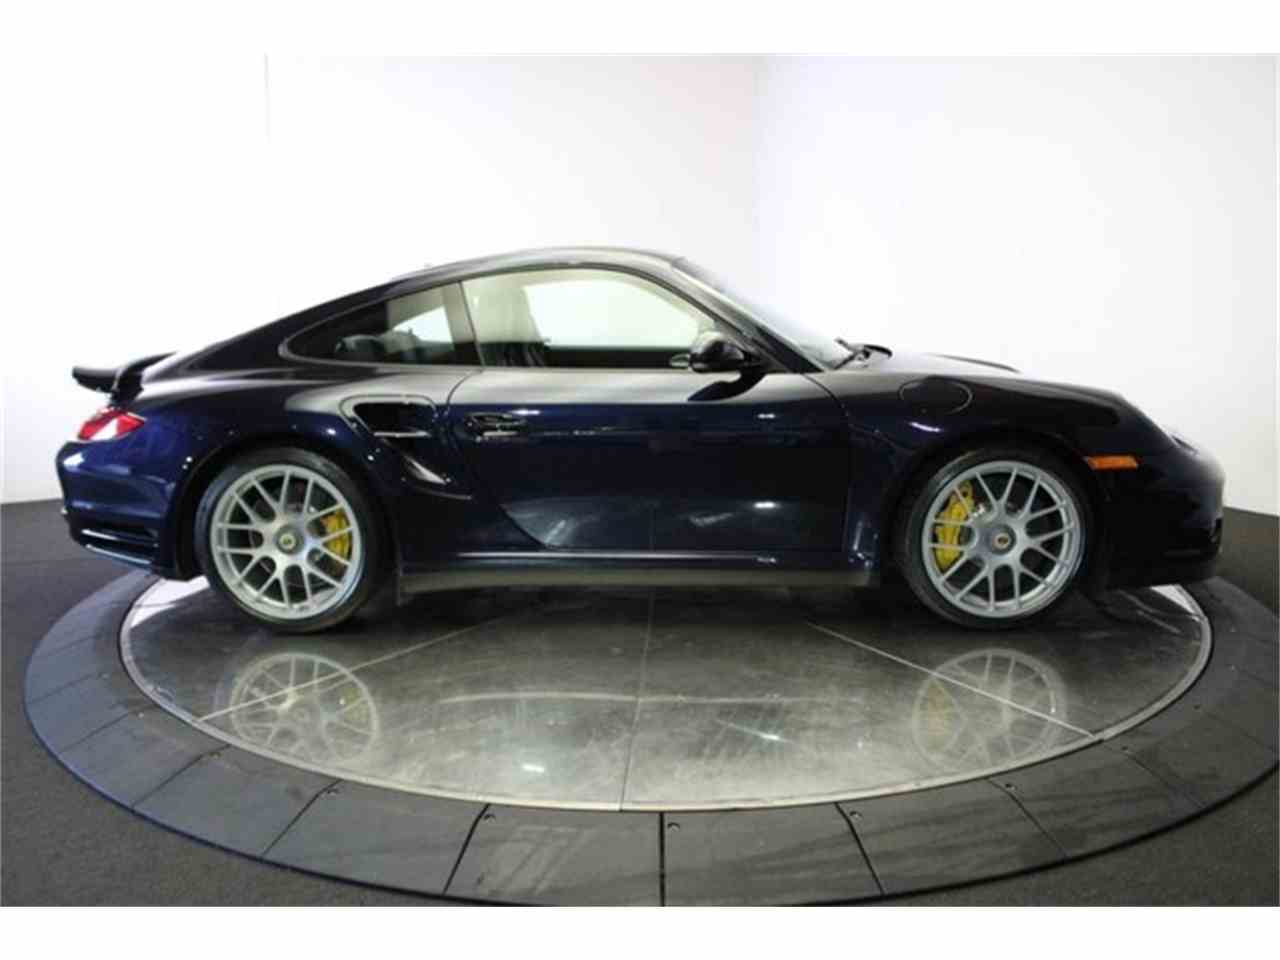 Large Picture of '12 Porsche 911 located in Anaheim California - $106,900.00 Offered by DC Motors - MH0Y